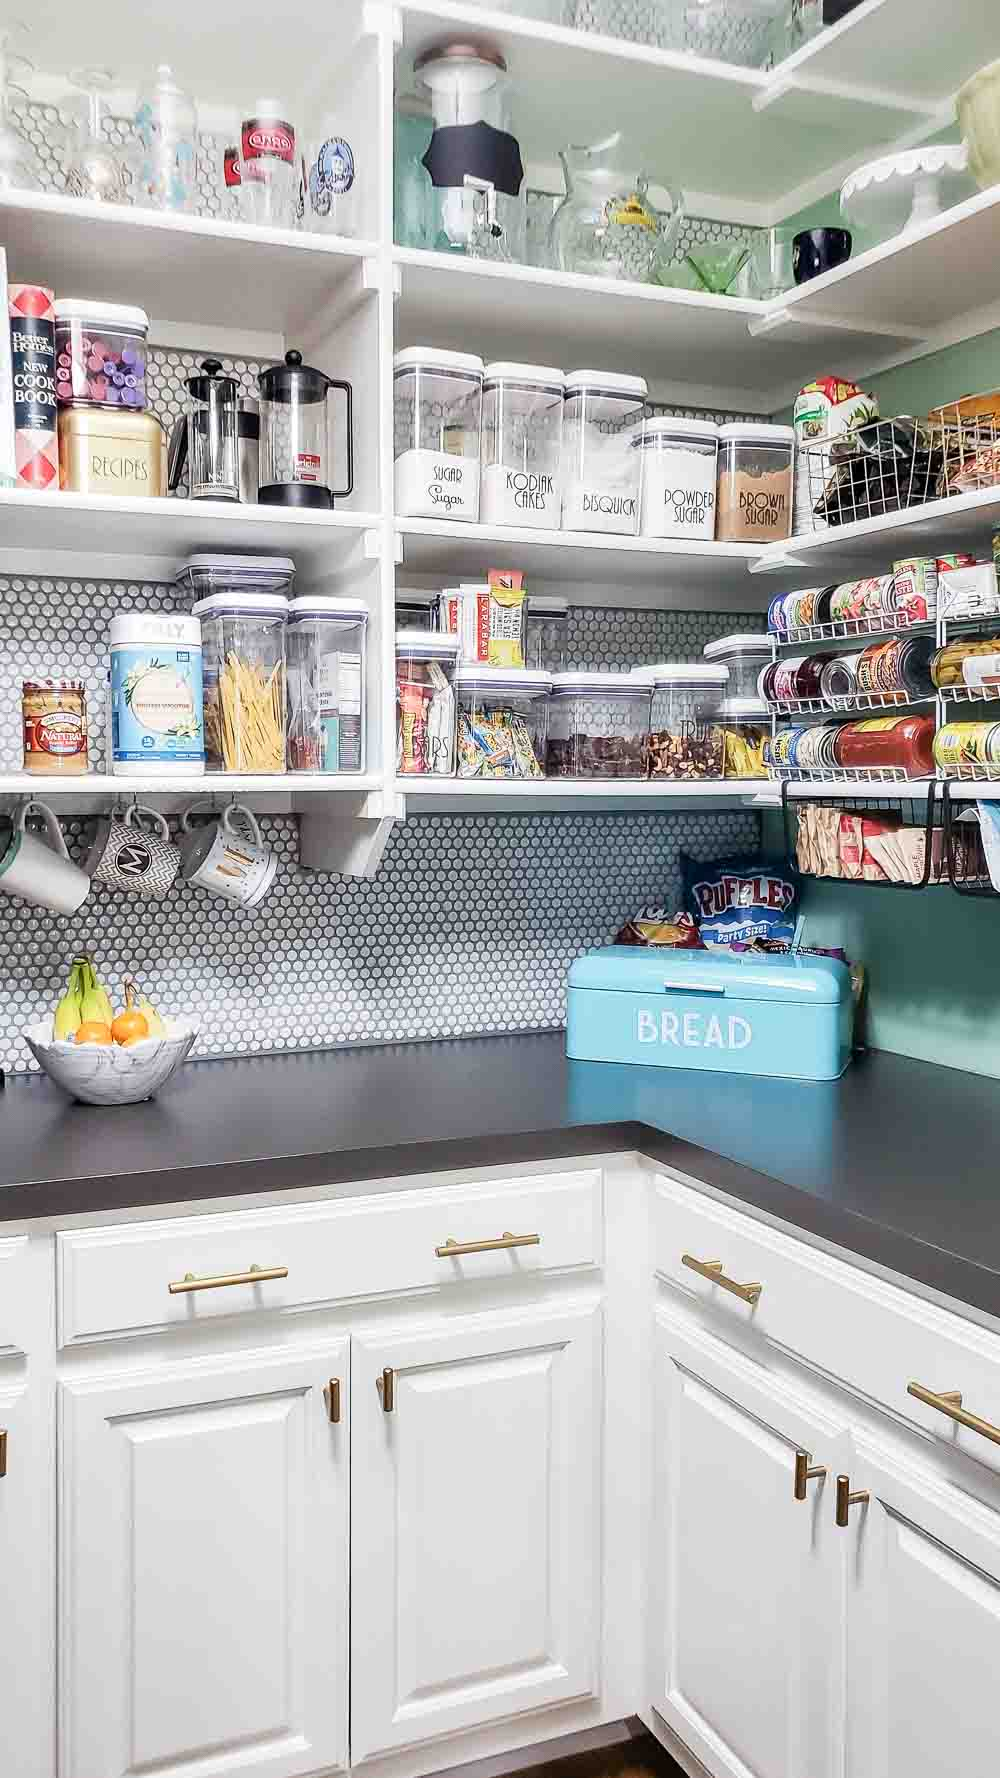 real life kitchen pantry organization update kitchen organization kitchen storage pantry on kitchen organization no pantry id=75432